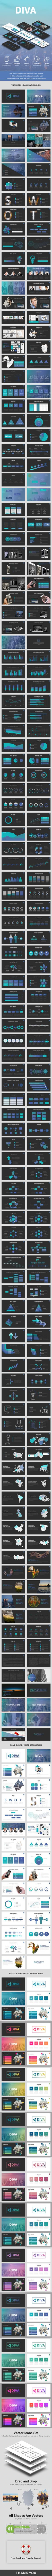 DIVA Business Pitch Deck #theme #thmx #professional business presentation #infographic • Download ➝ https://graphicriver.net/item/diva-business-pitch-deck/18681287?ref=pxcr